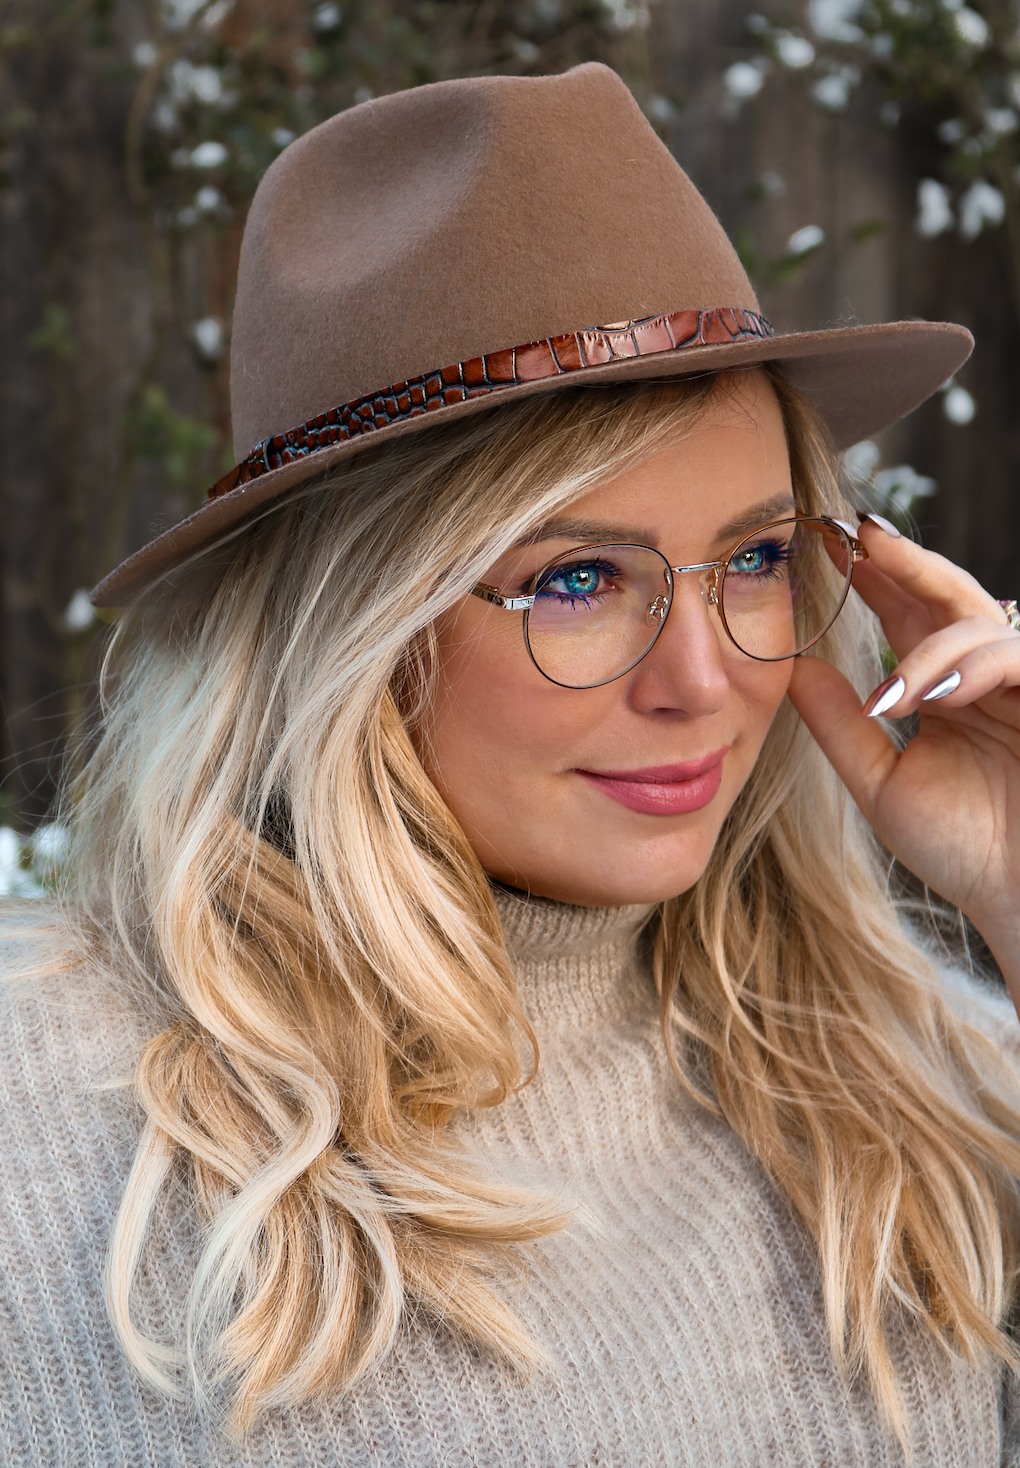 The Amy - Blue light blocking glasses